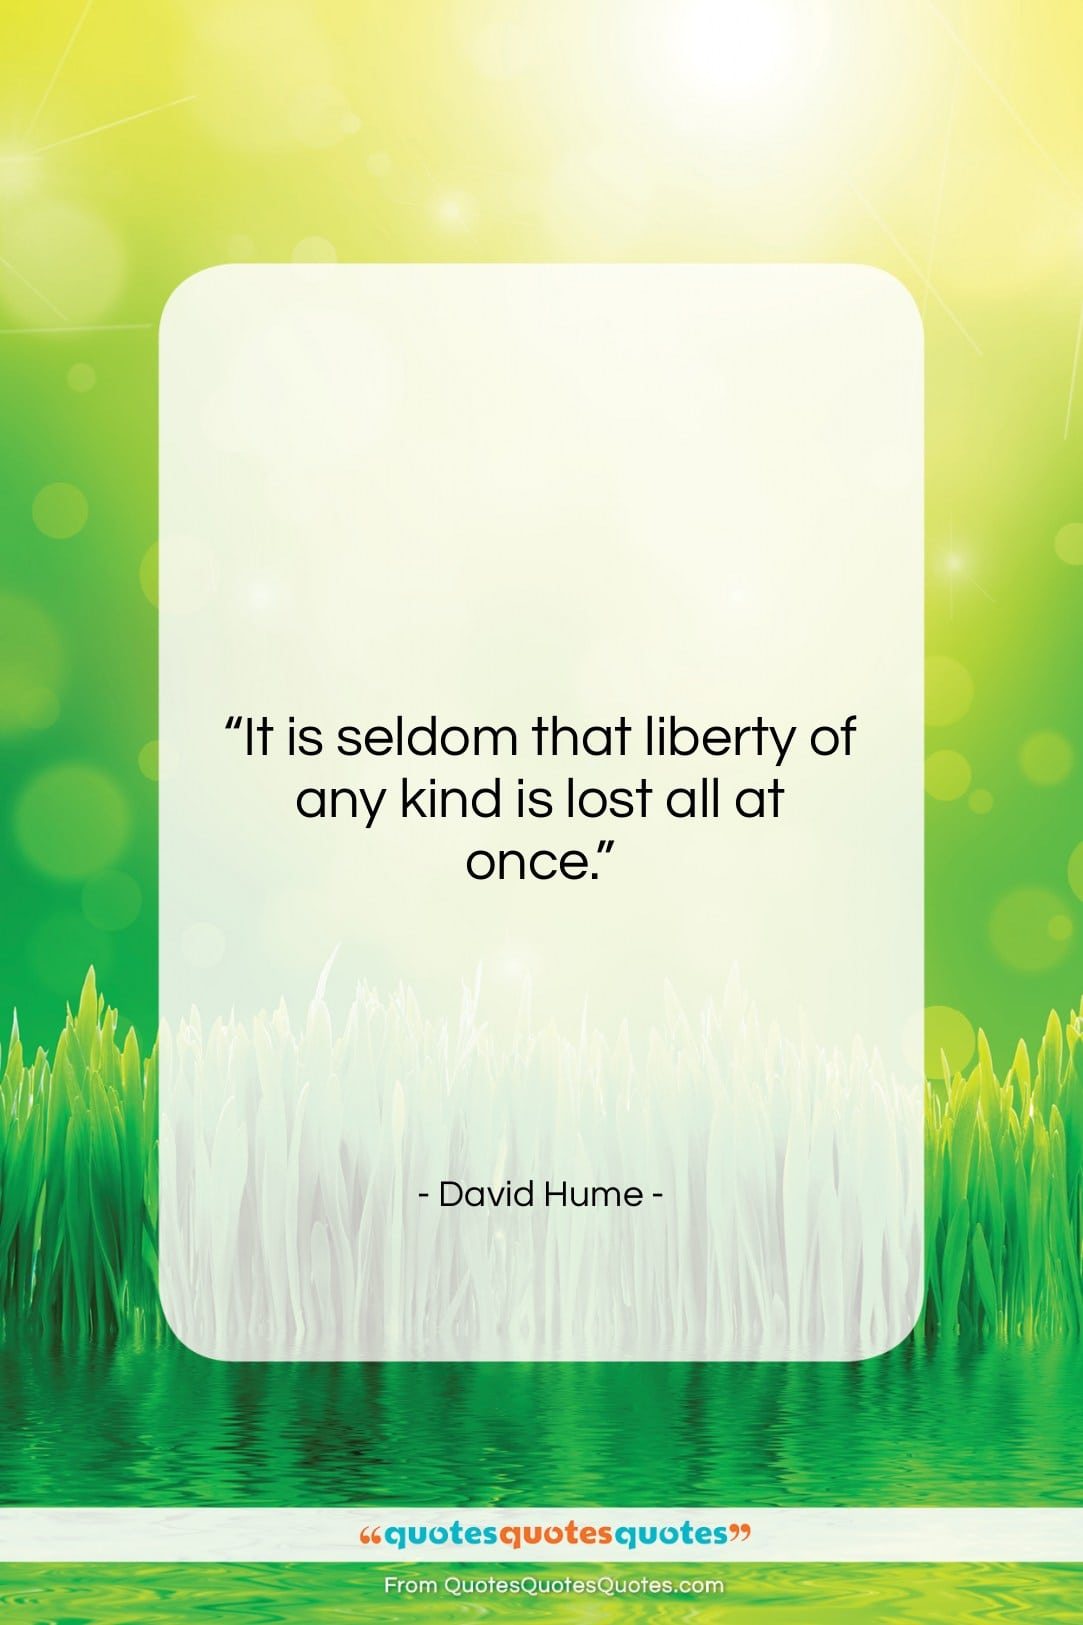 """David Hume quote: """"It is seldom that liberty of any…""""- at QuotesQuotesQuotes.com"""